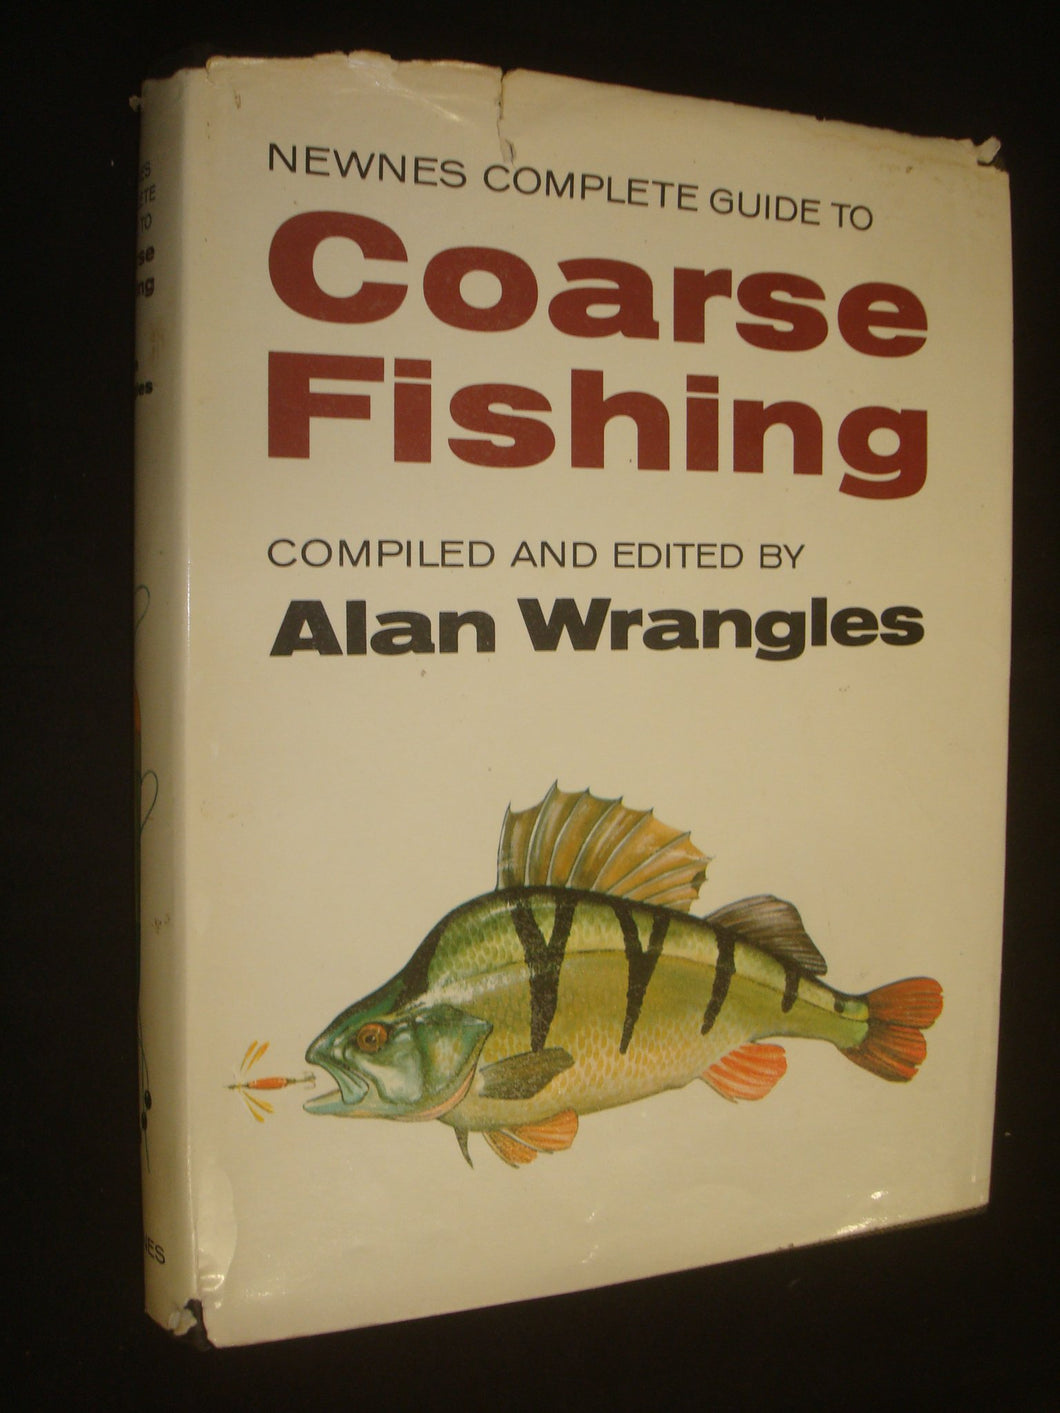 Newnes Complete Guide to Coarse Fishing by Alan Wrangles [Hardcover] Alan Wrangles